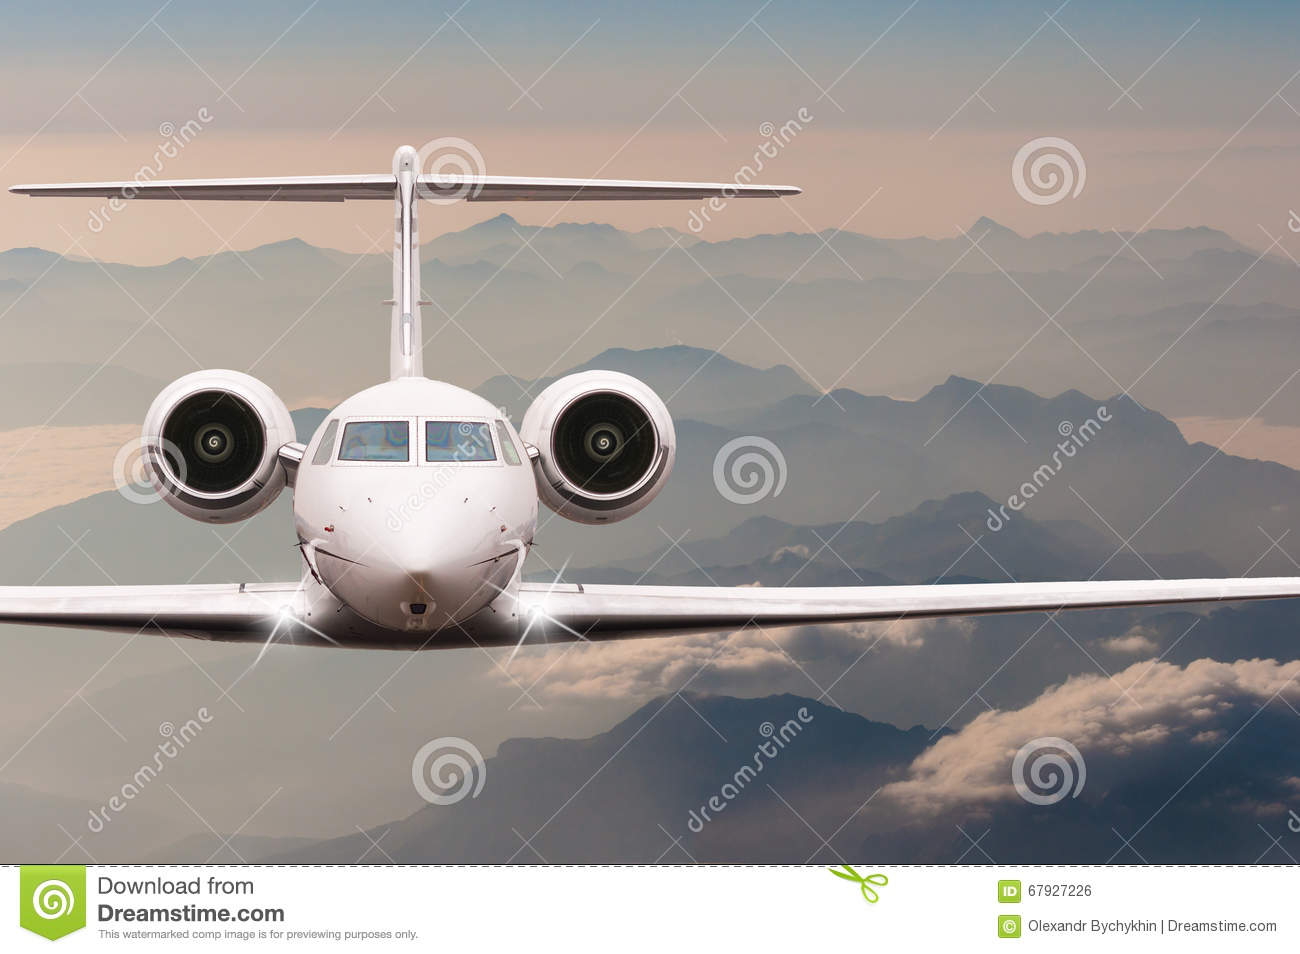 Travel by aircraft. Airplane fly over clouds and Alps mountain on down. Front view of a big passenger or cargo plane